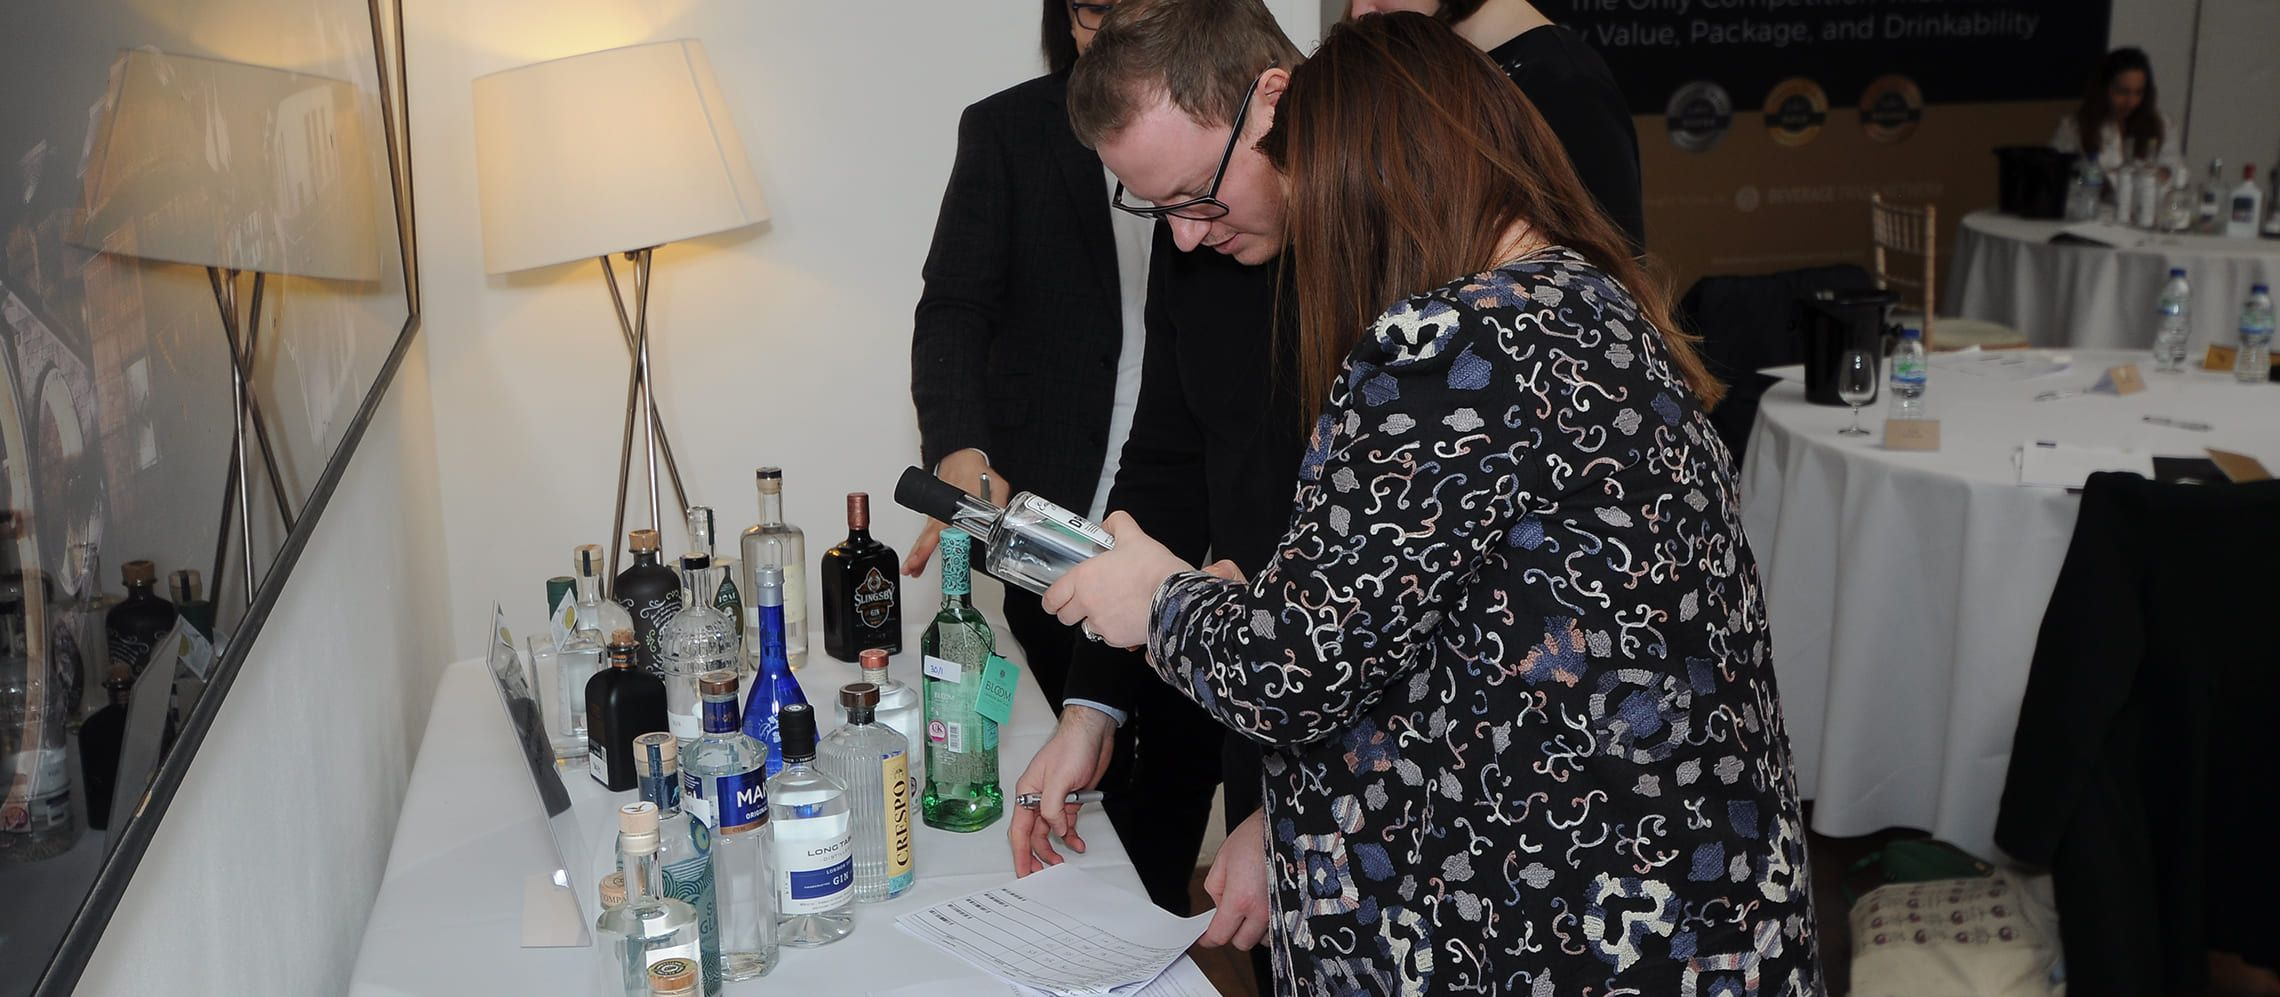 Photo for: London Wine Beer and Spirits Competitions to be Promoted Around the World